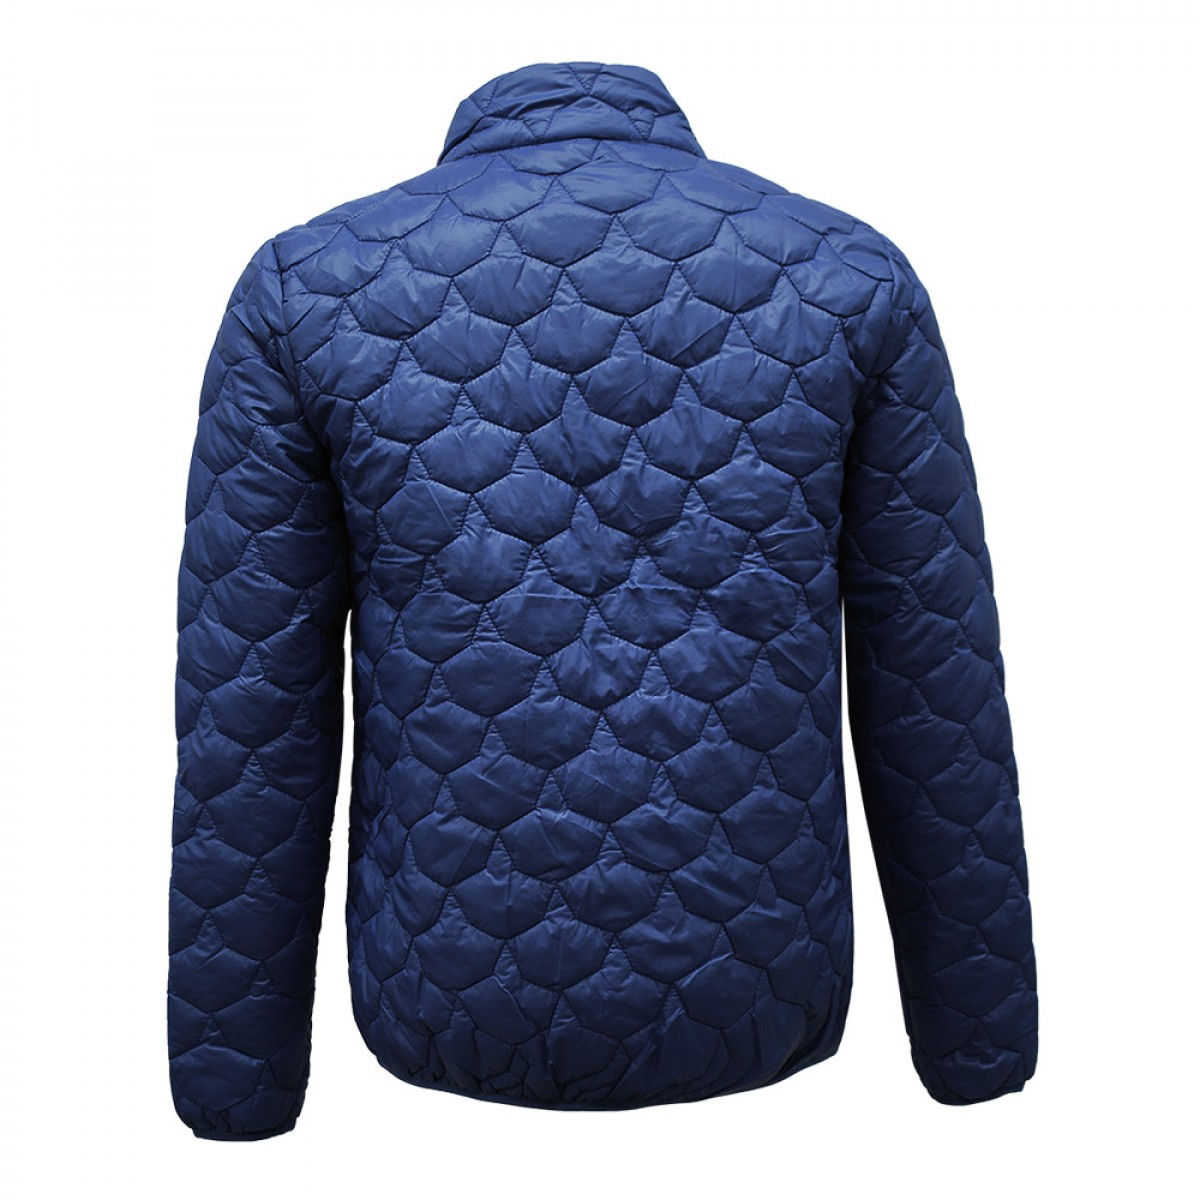 official-national-team-polyfiber-jacket-without-hoodie-akpj05911-5a